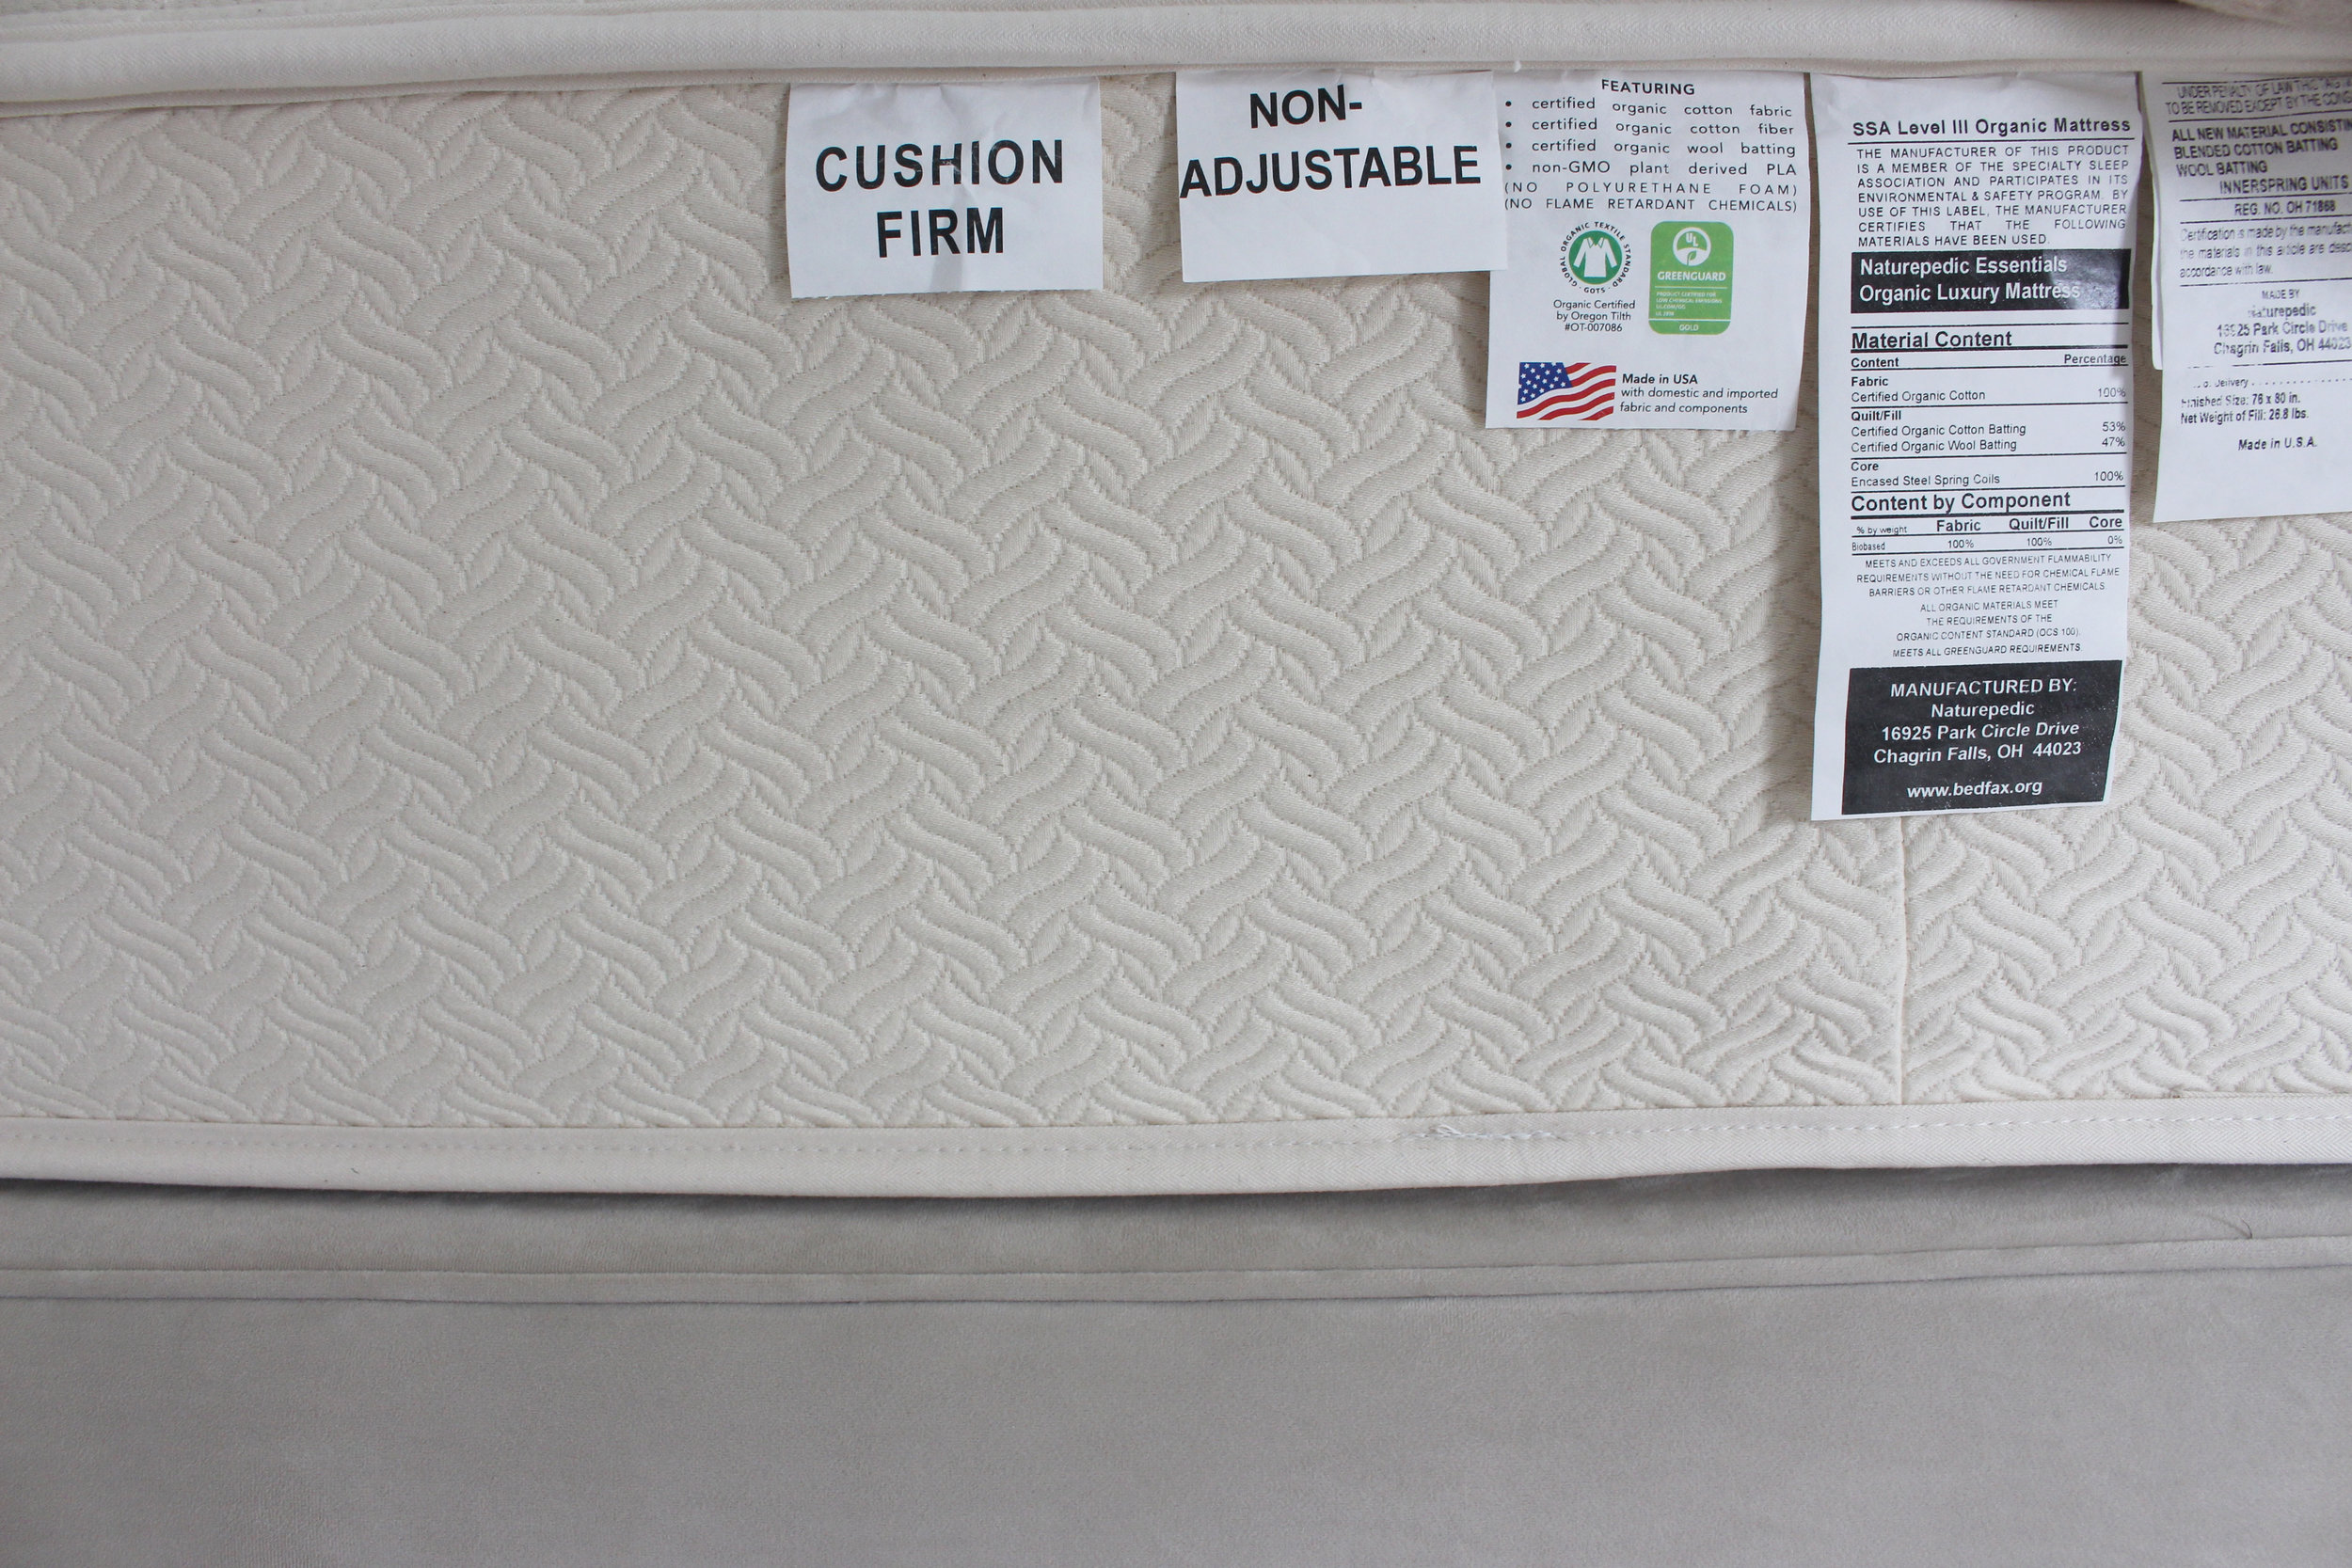 A photo of our cushion firm Naturepedic mattress under the cover.